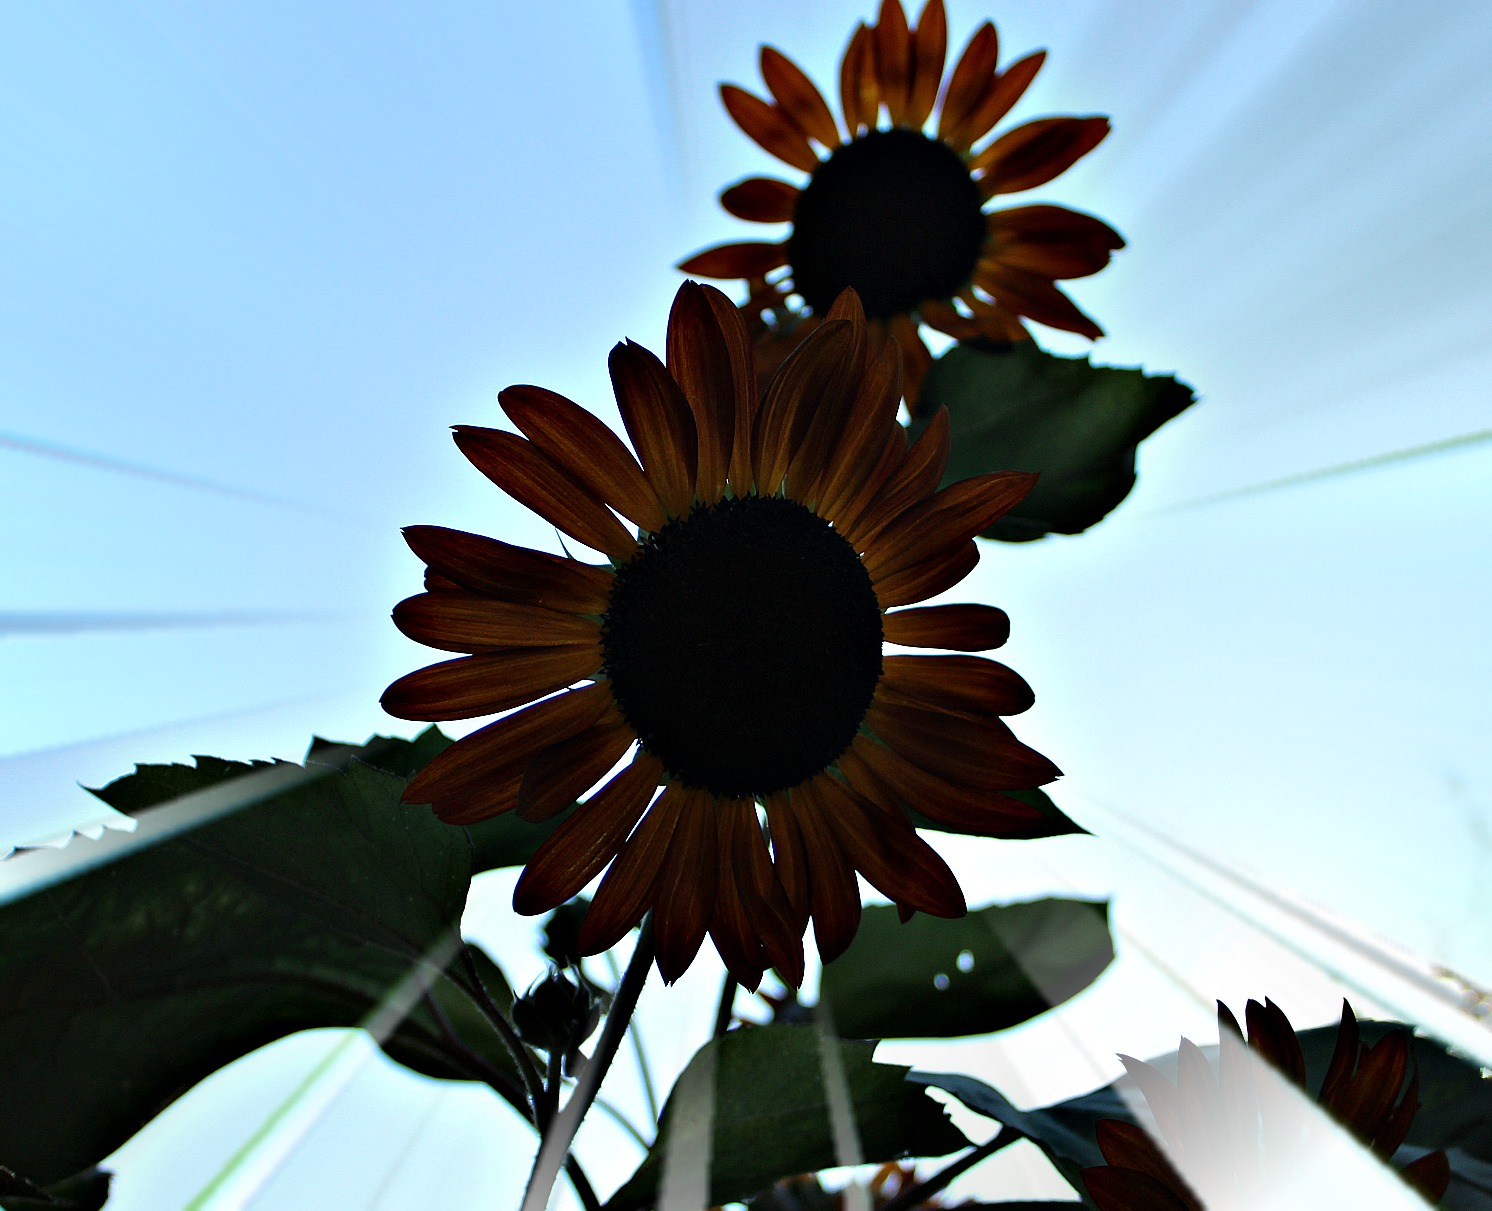 two sunflowers at dusk with sunrays behind them